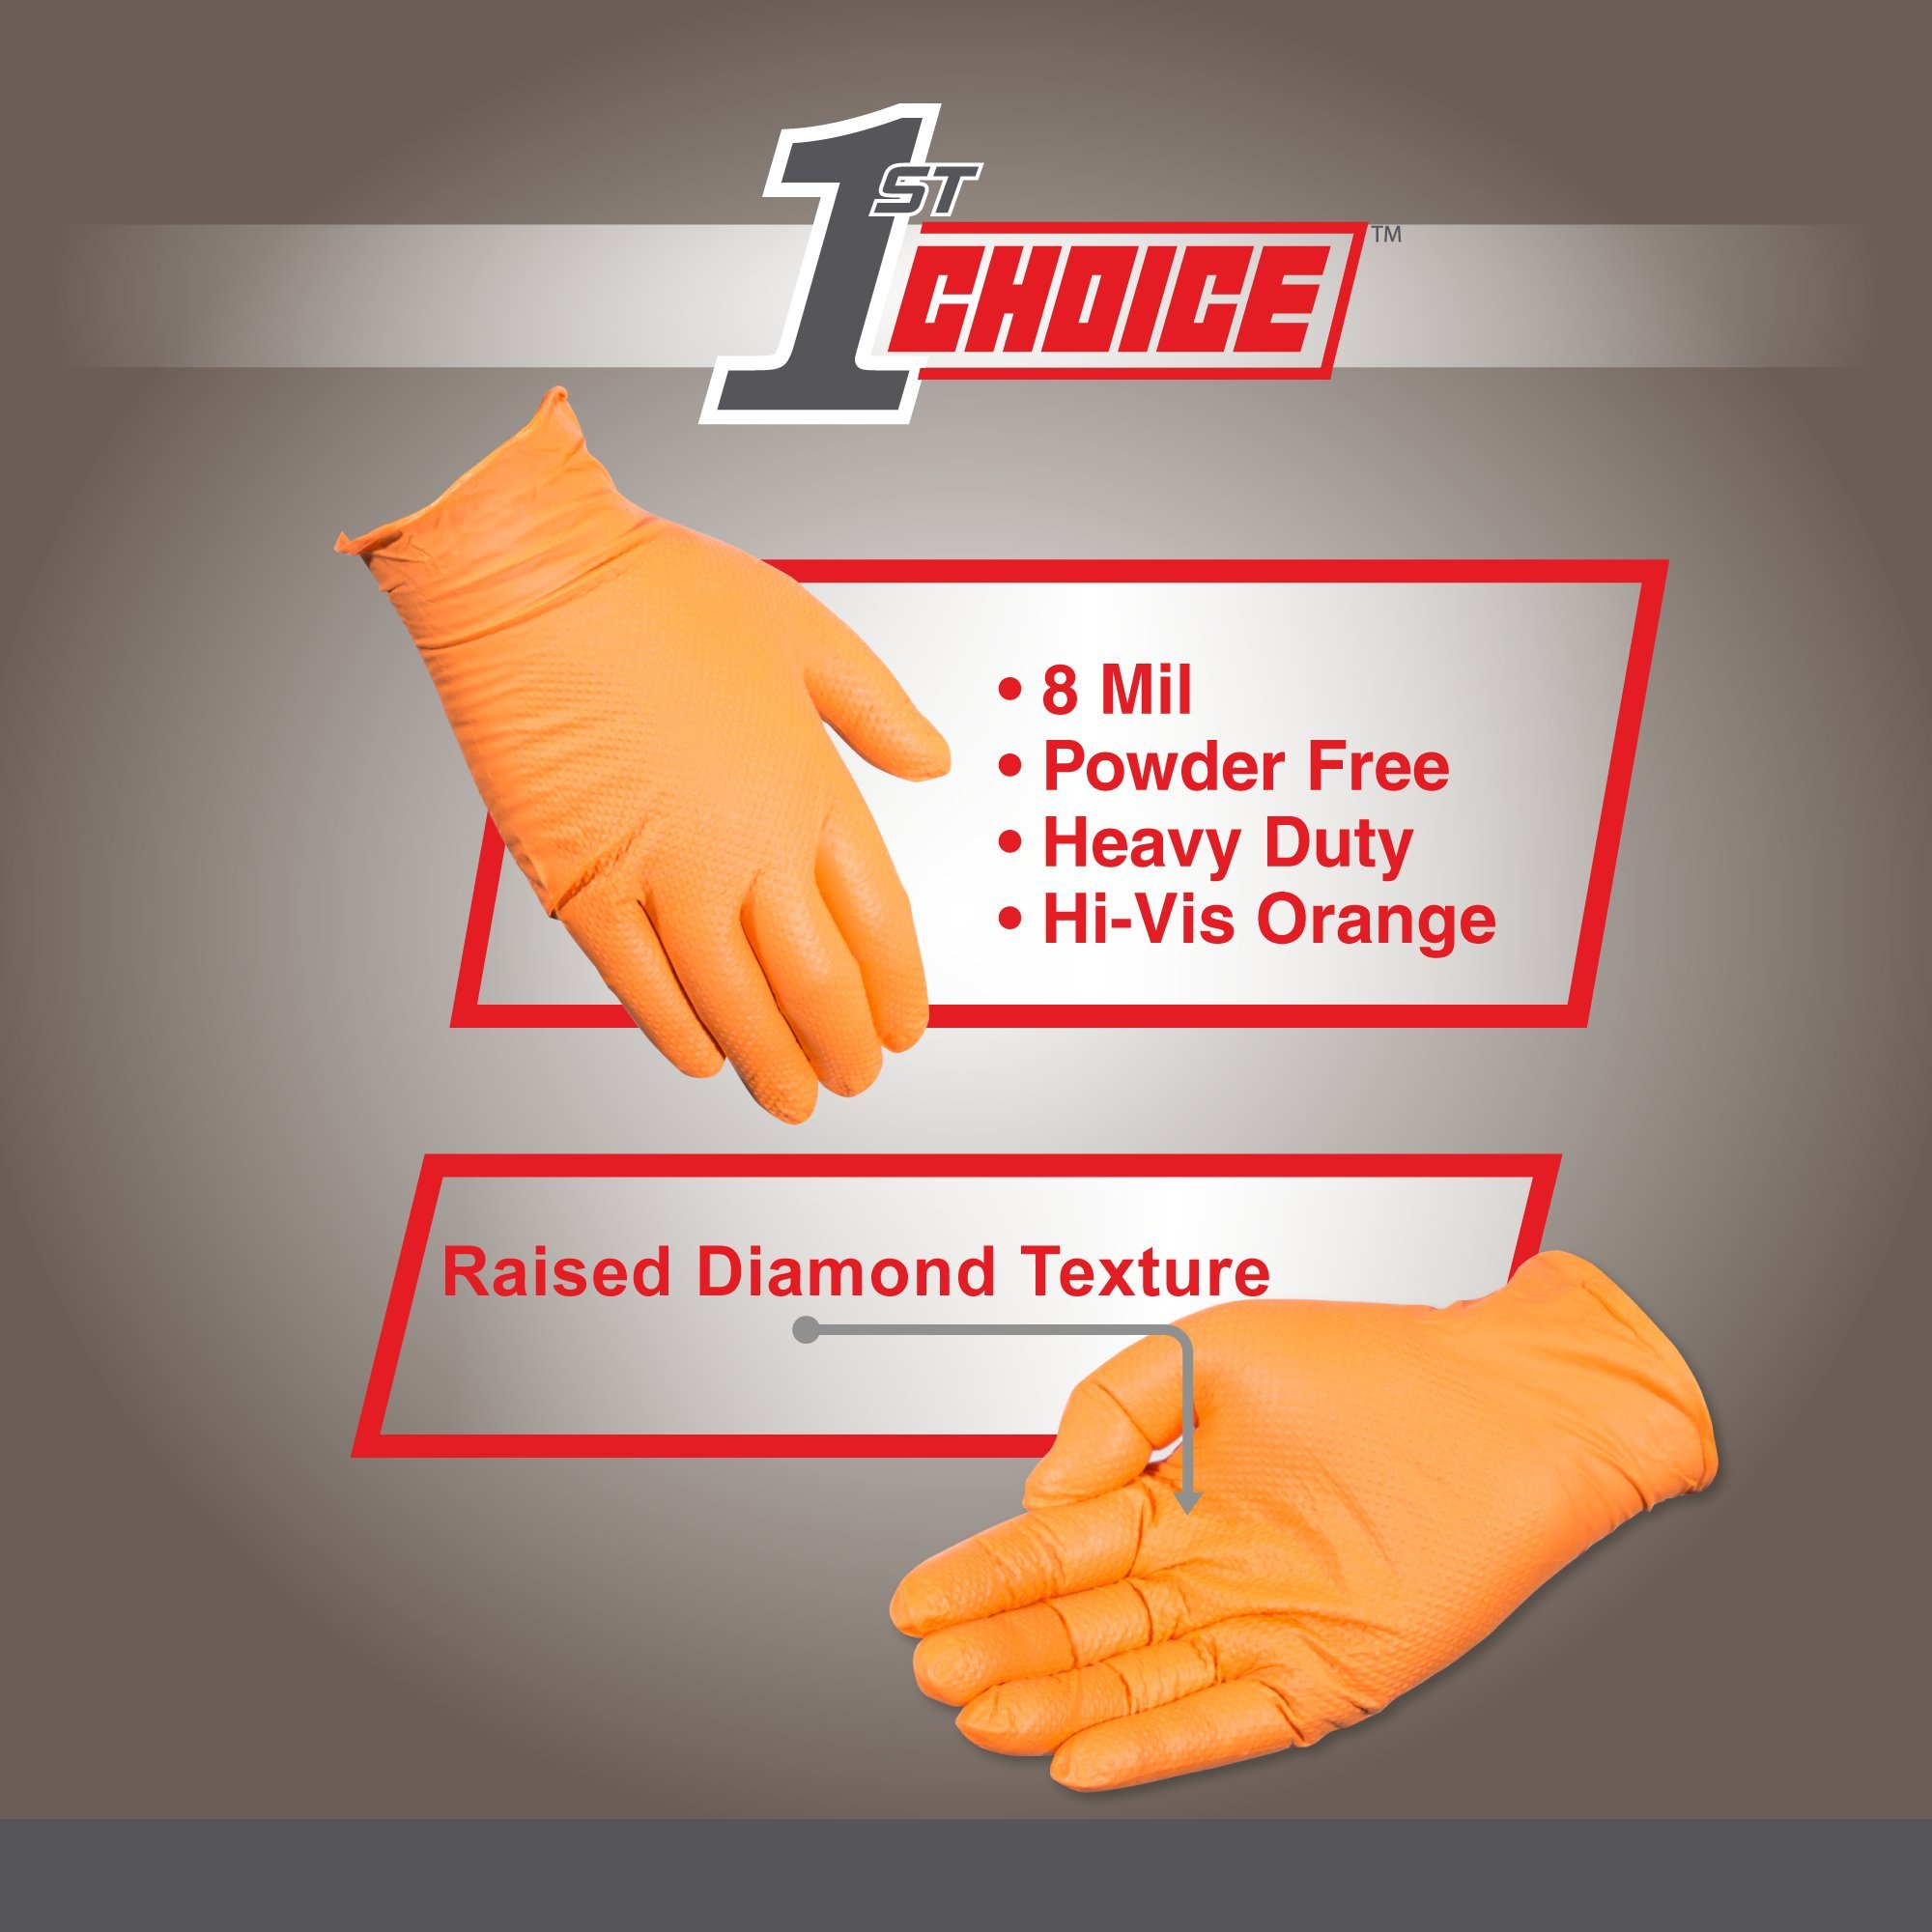 1st Choice Industrial 8 Mil Orange Nitrile Gloves - Latex Free, Powder Free, Non-Sterile, Large, Case of 400 by 1st Choice (Image #3)